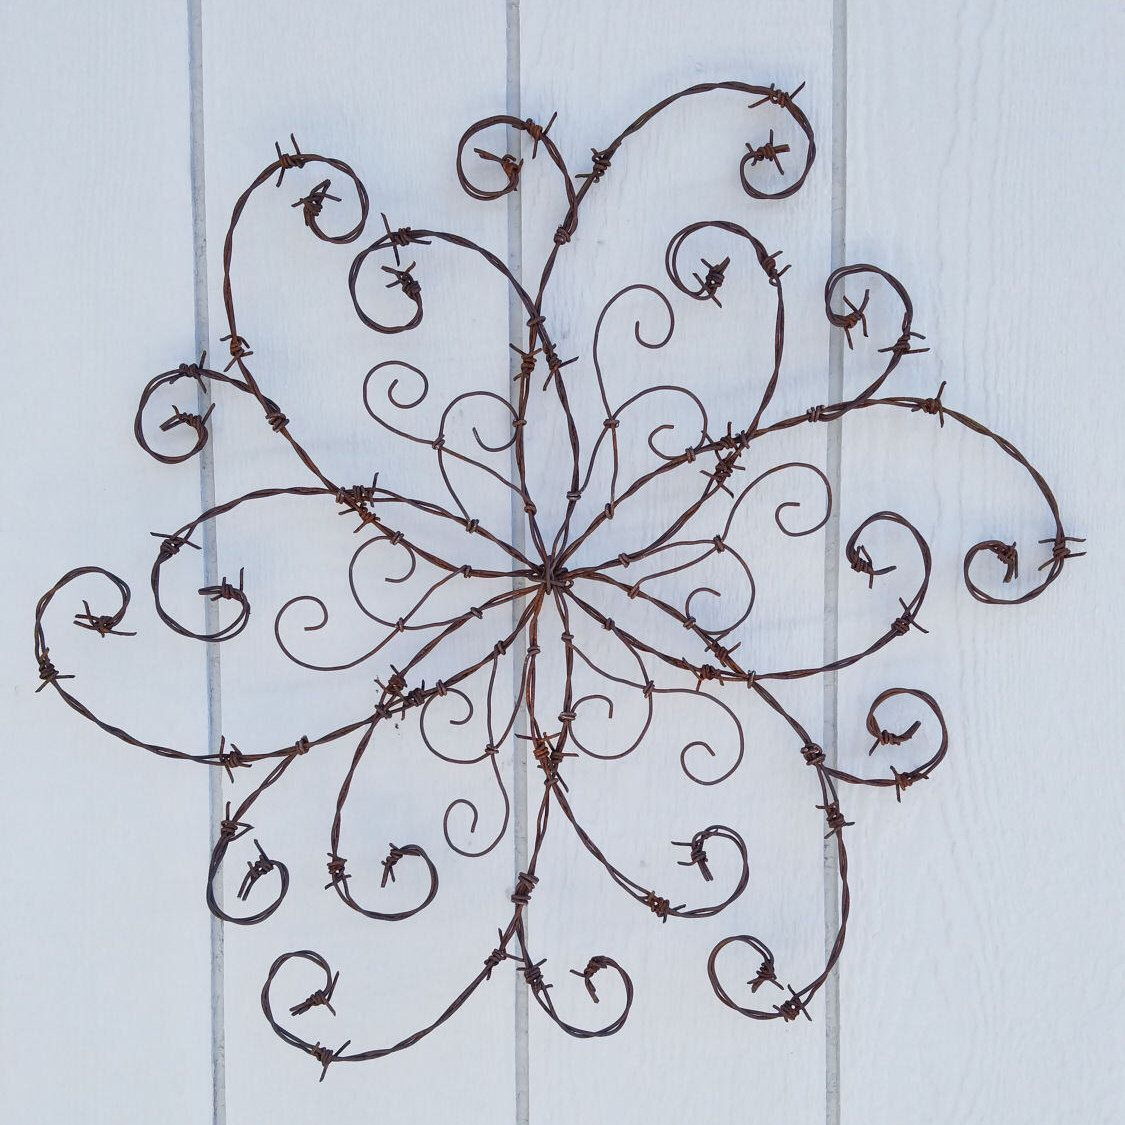 Barbed Wire Swirl; Wrought Iron Swirl; Barbed Wire Wall Decor; Rustic Decor; Front Door; Wall Hanging; Farmhouse Decor; Western Decor  sc 1 st  Pinterest & Barbed Wire Swirl; Wrought Iron Swirl; Barbed Wire Wall Decor ...